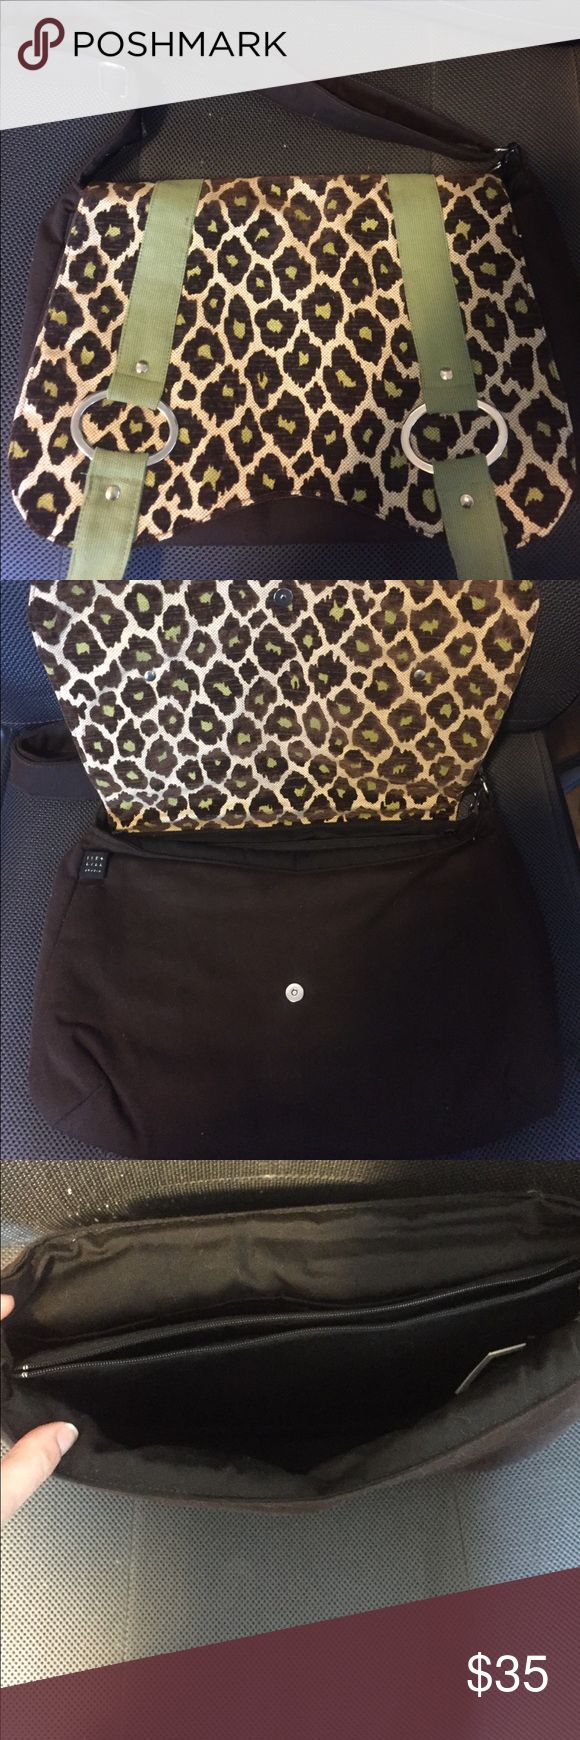 1154 Lill Custom Handbag Small custom messenger bag that could easily fit your iPad or smaller computer/tablet. Two sections with a zip pocket in between. Brown body & adjustable strap. Front is leopard print with green stripes. Barely used! In good condition. 1154 Lill Bags Shoulder Bags